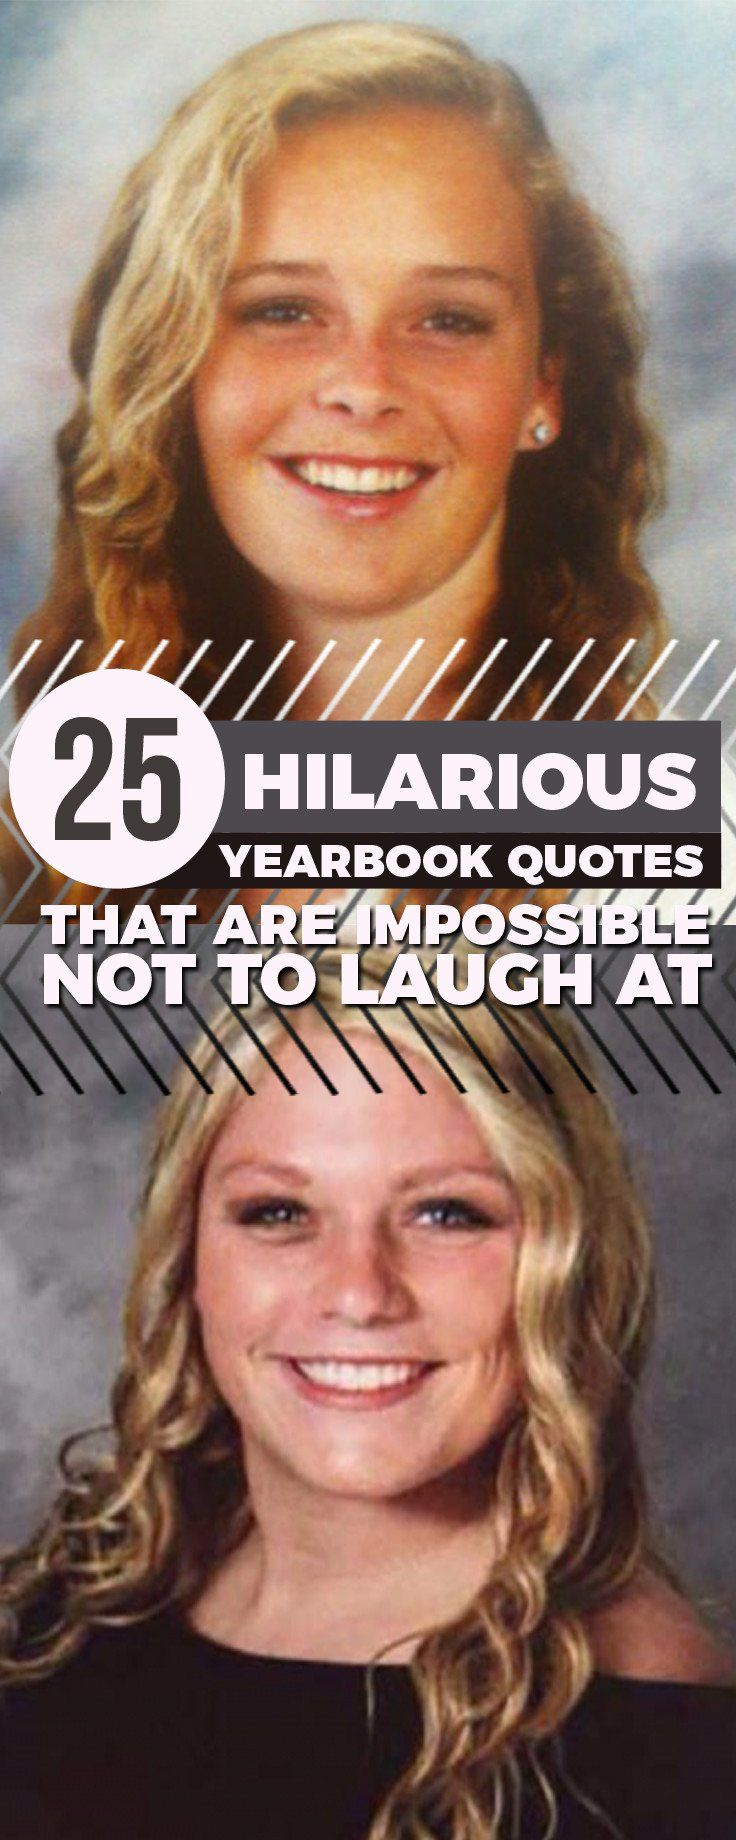 25 Hilarious Yearbook Quotes That Are Impossible Not To Laugh At Yearbook Quotes